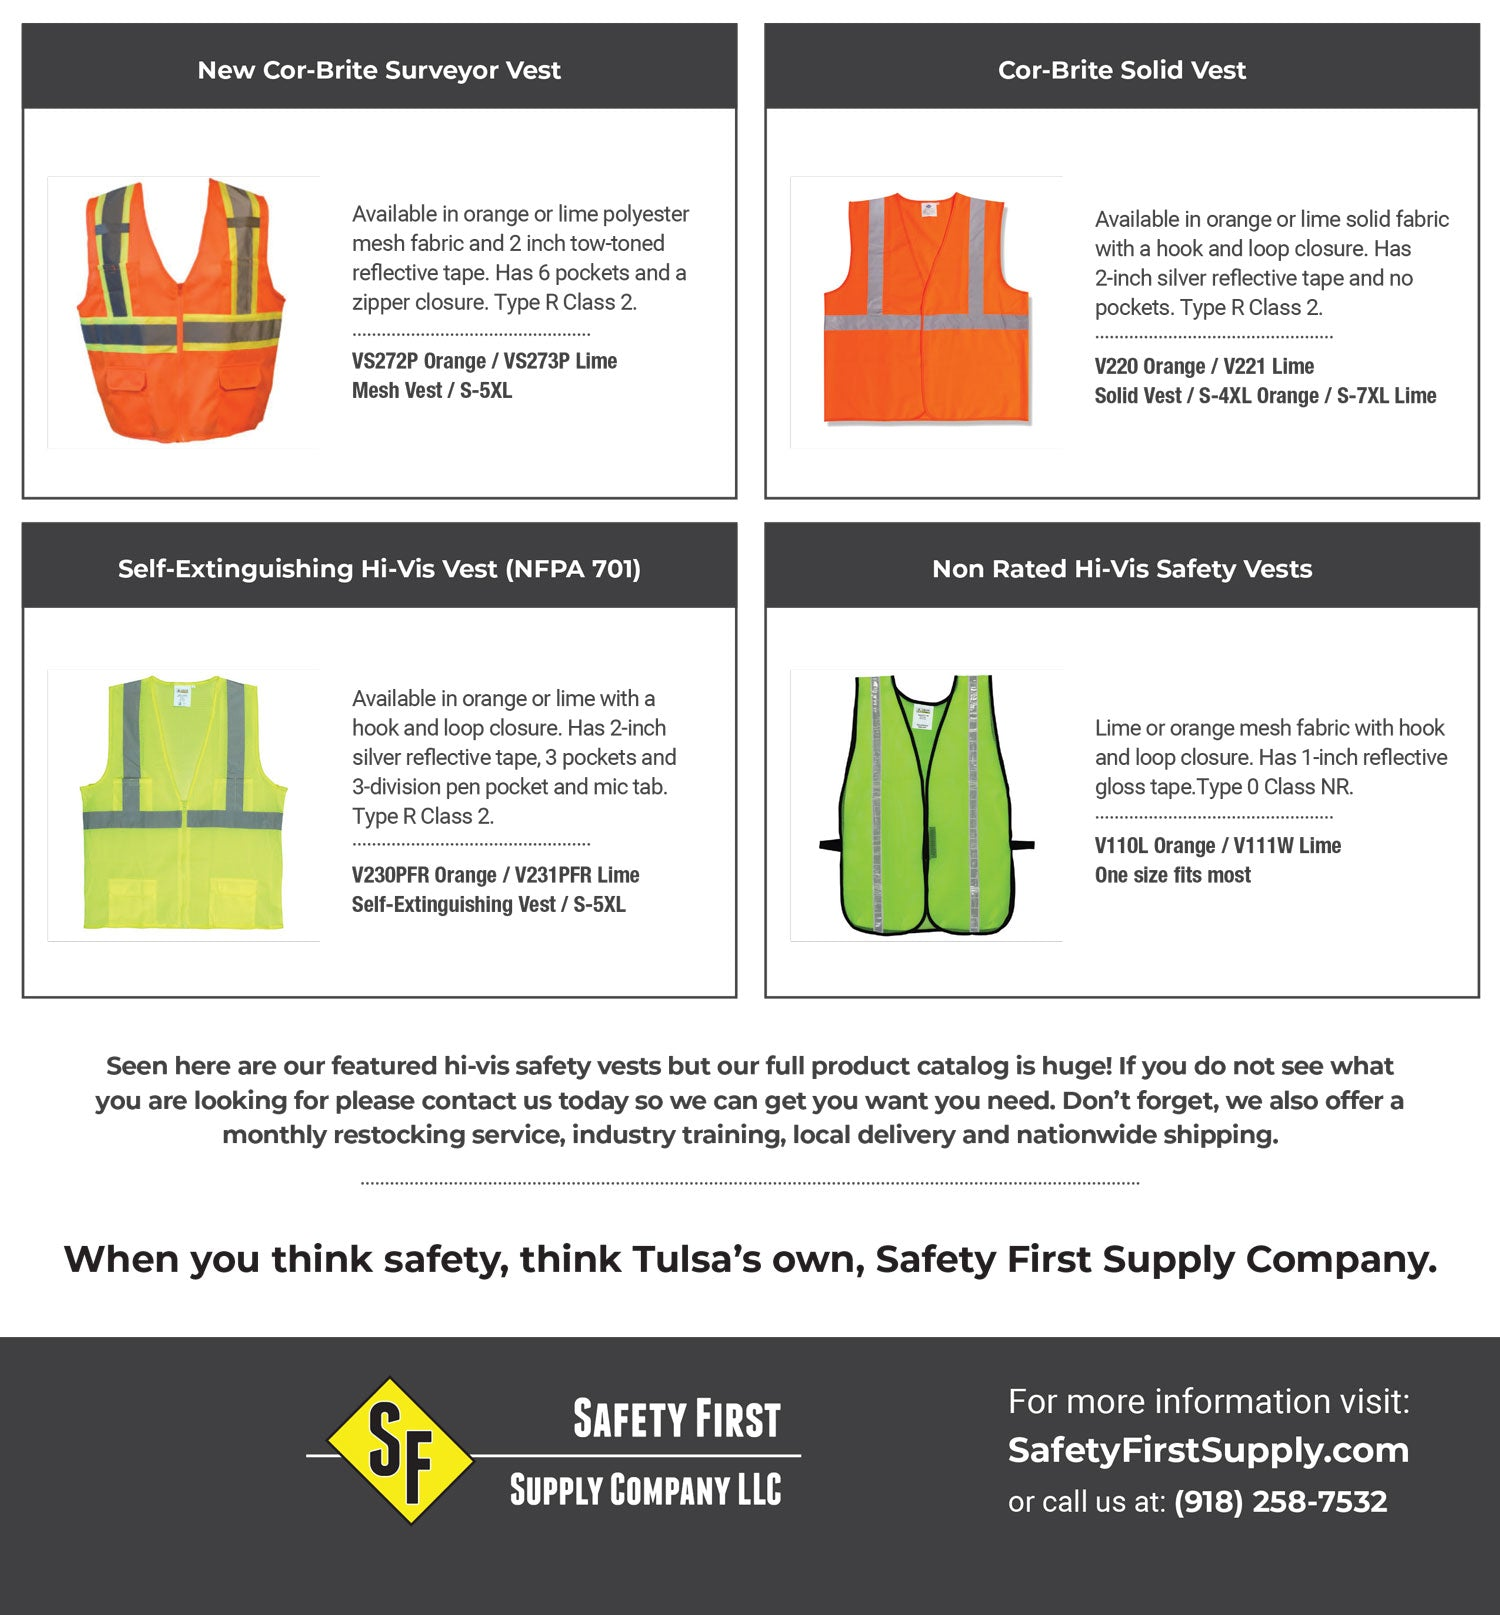 Tulsa Safety Vests